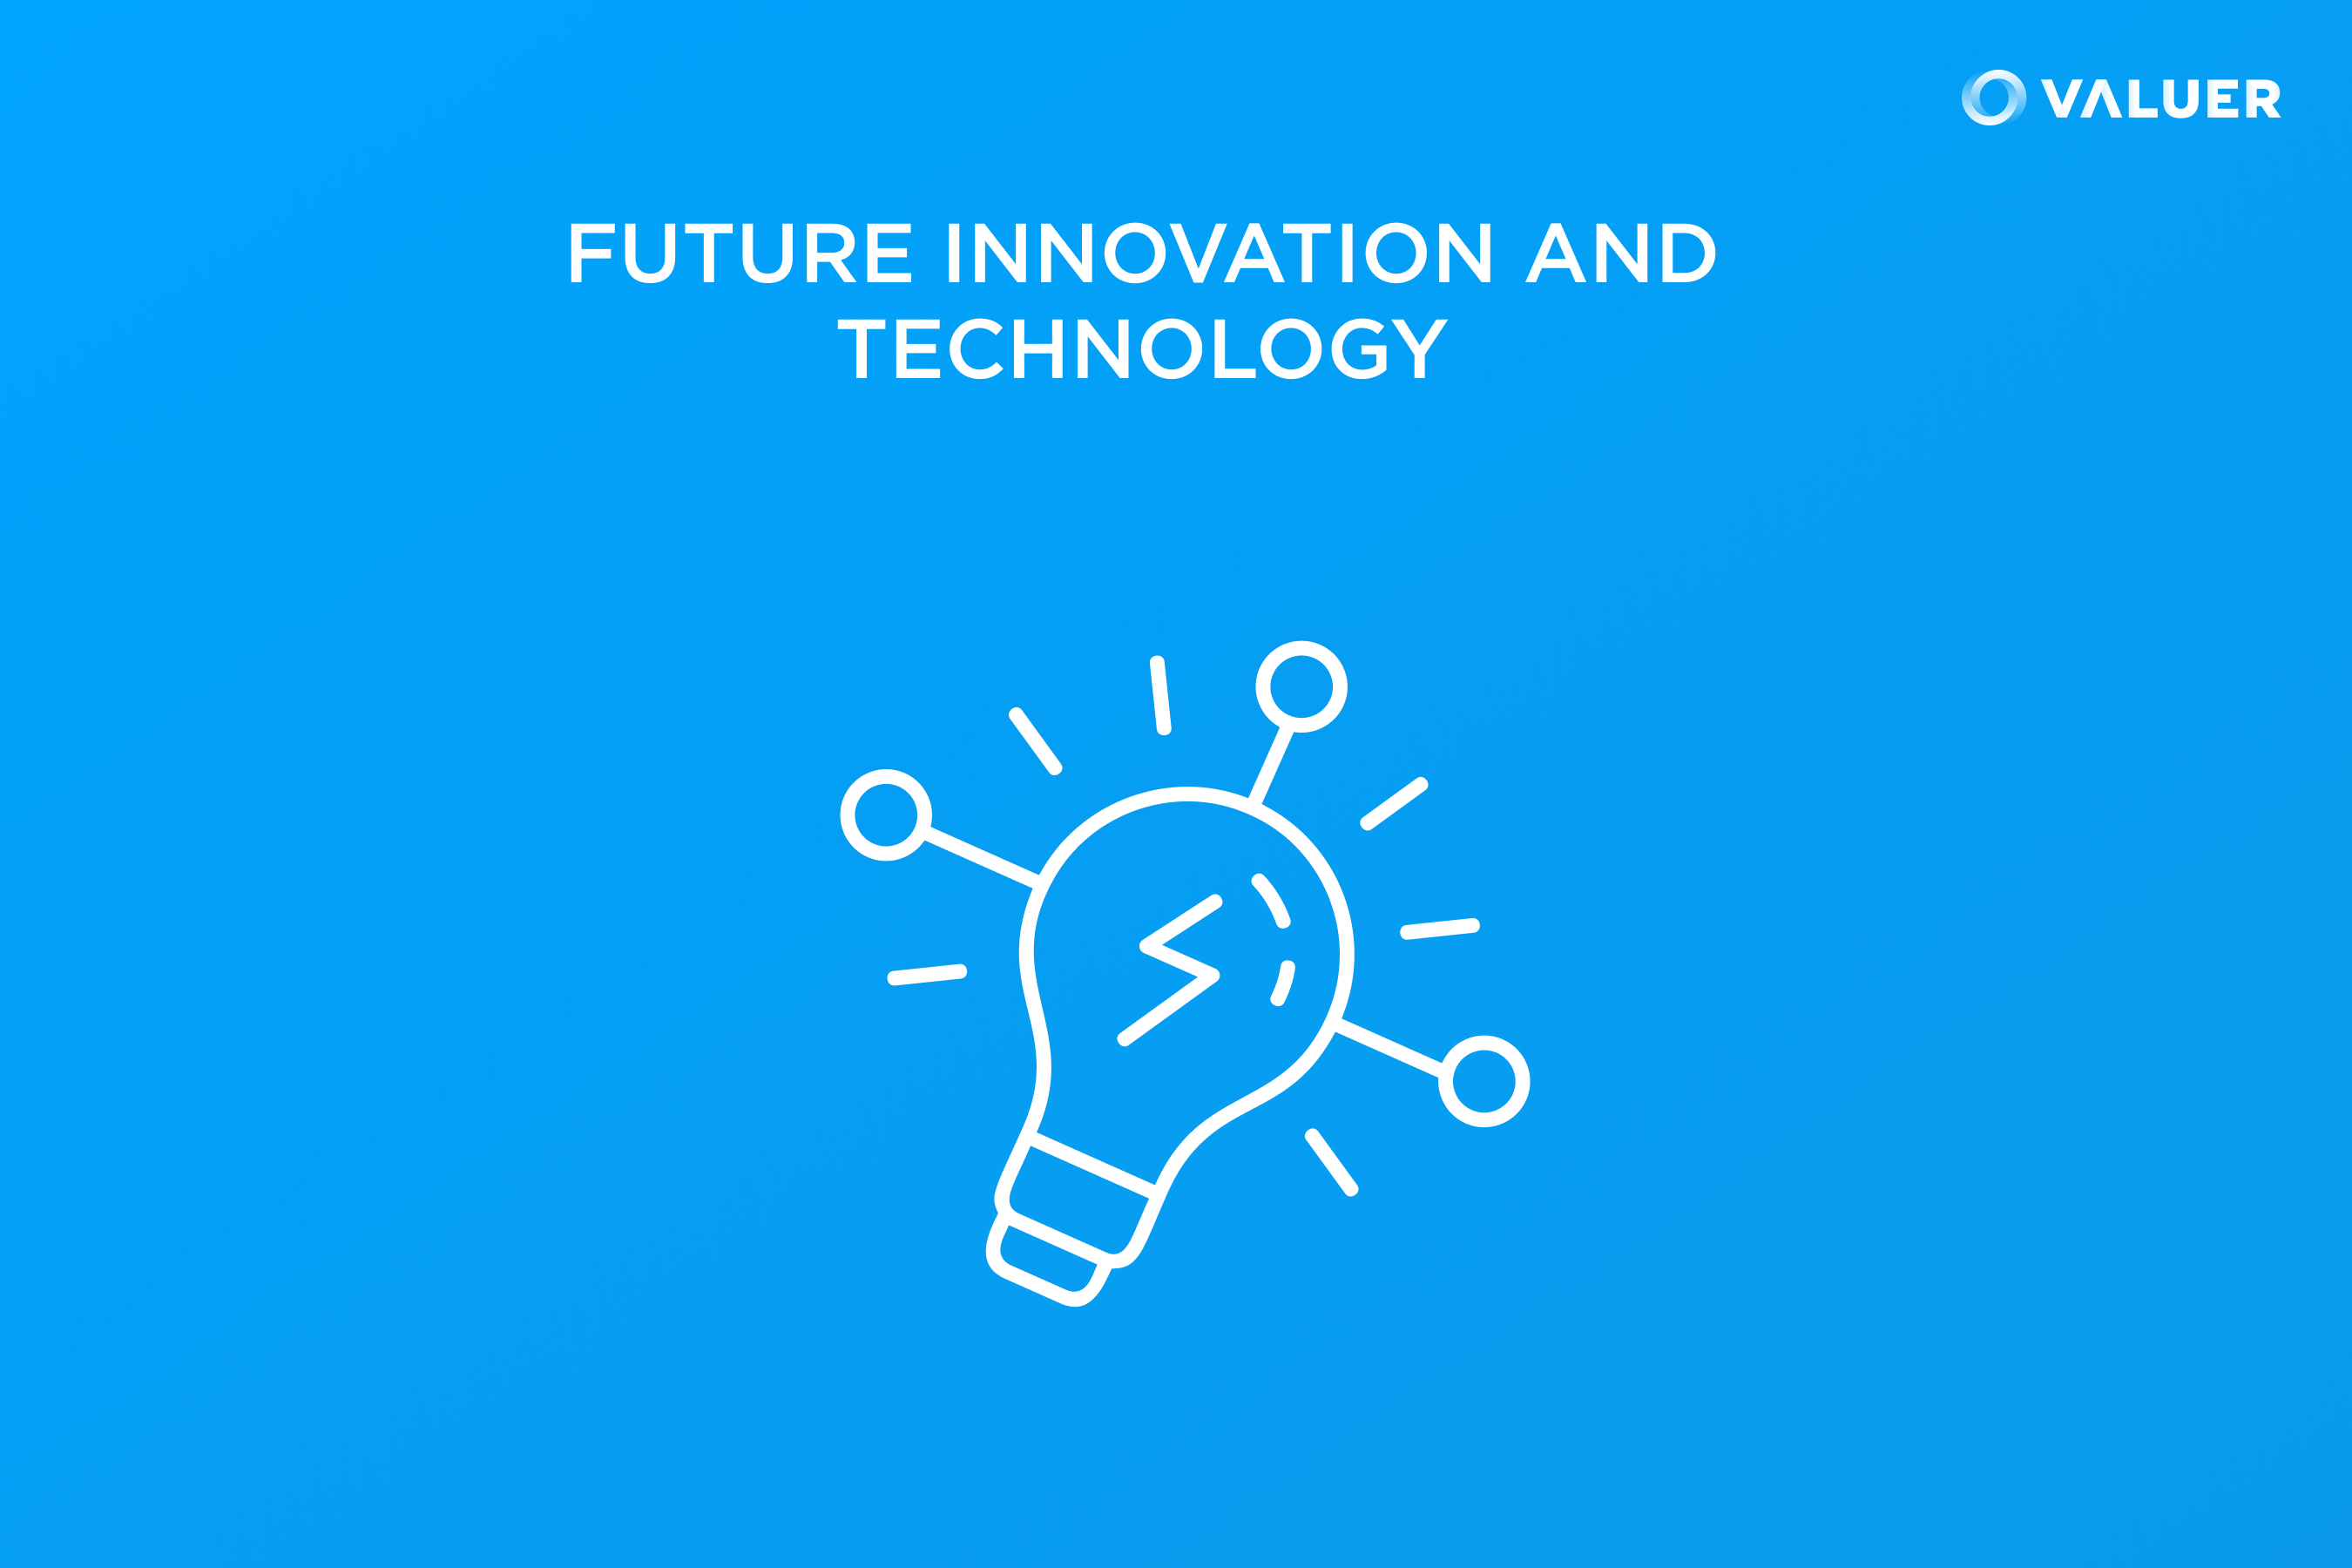 Future Innovation and Technology Data Protection with a lightbulb